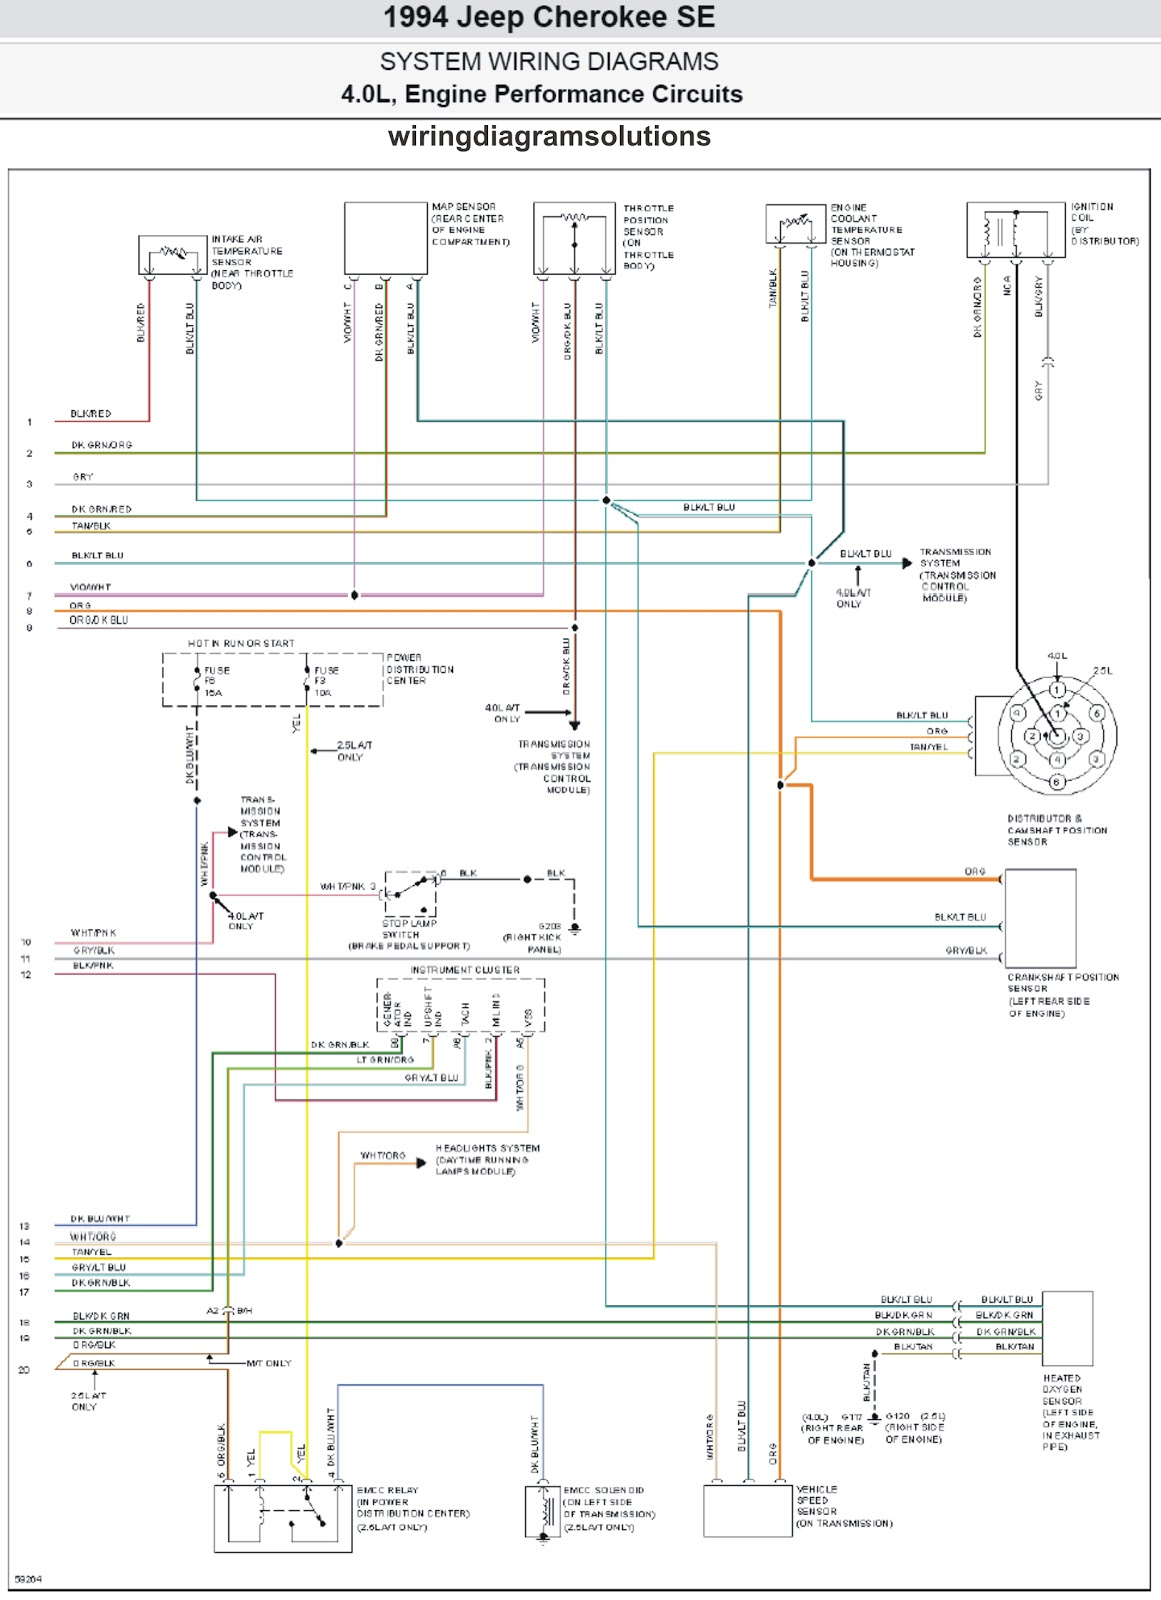 DIAGRAM] 01 Jeep Cherokee Wiring Diagram FULL Version HD Quality Wiring  Diagram - BOOKDIAGRAMS.LEGIODECIMA.IT | 1998 Jeep Cherokee Wiring Diagrams Pdf |  | Diagram Database